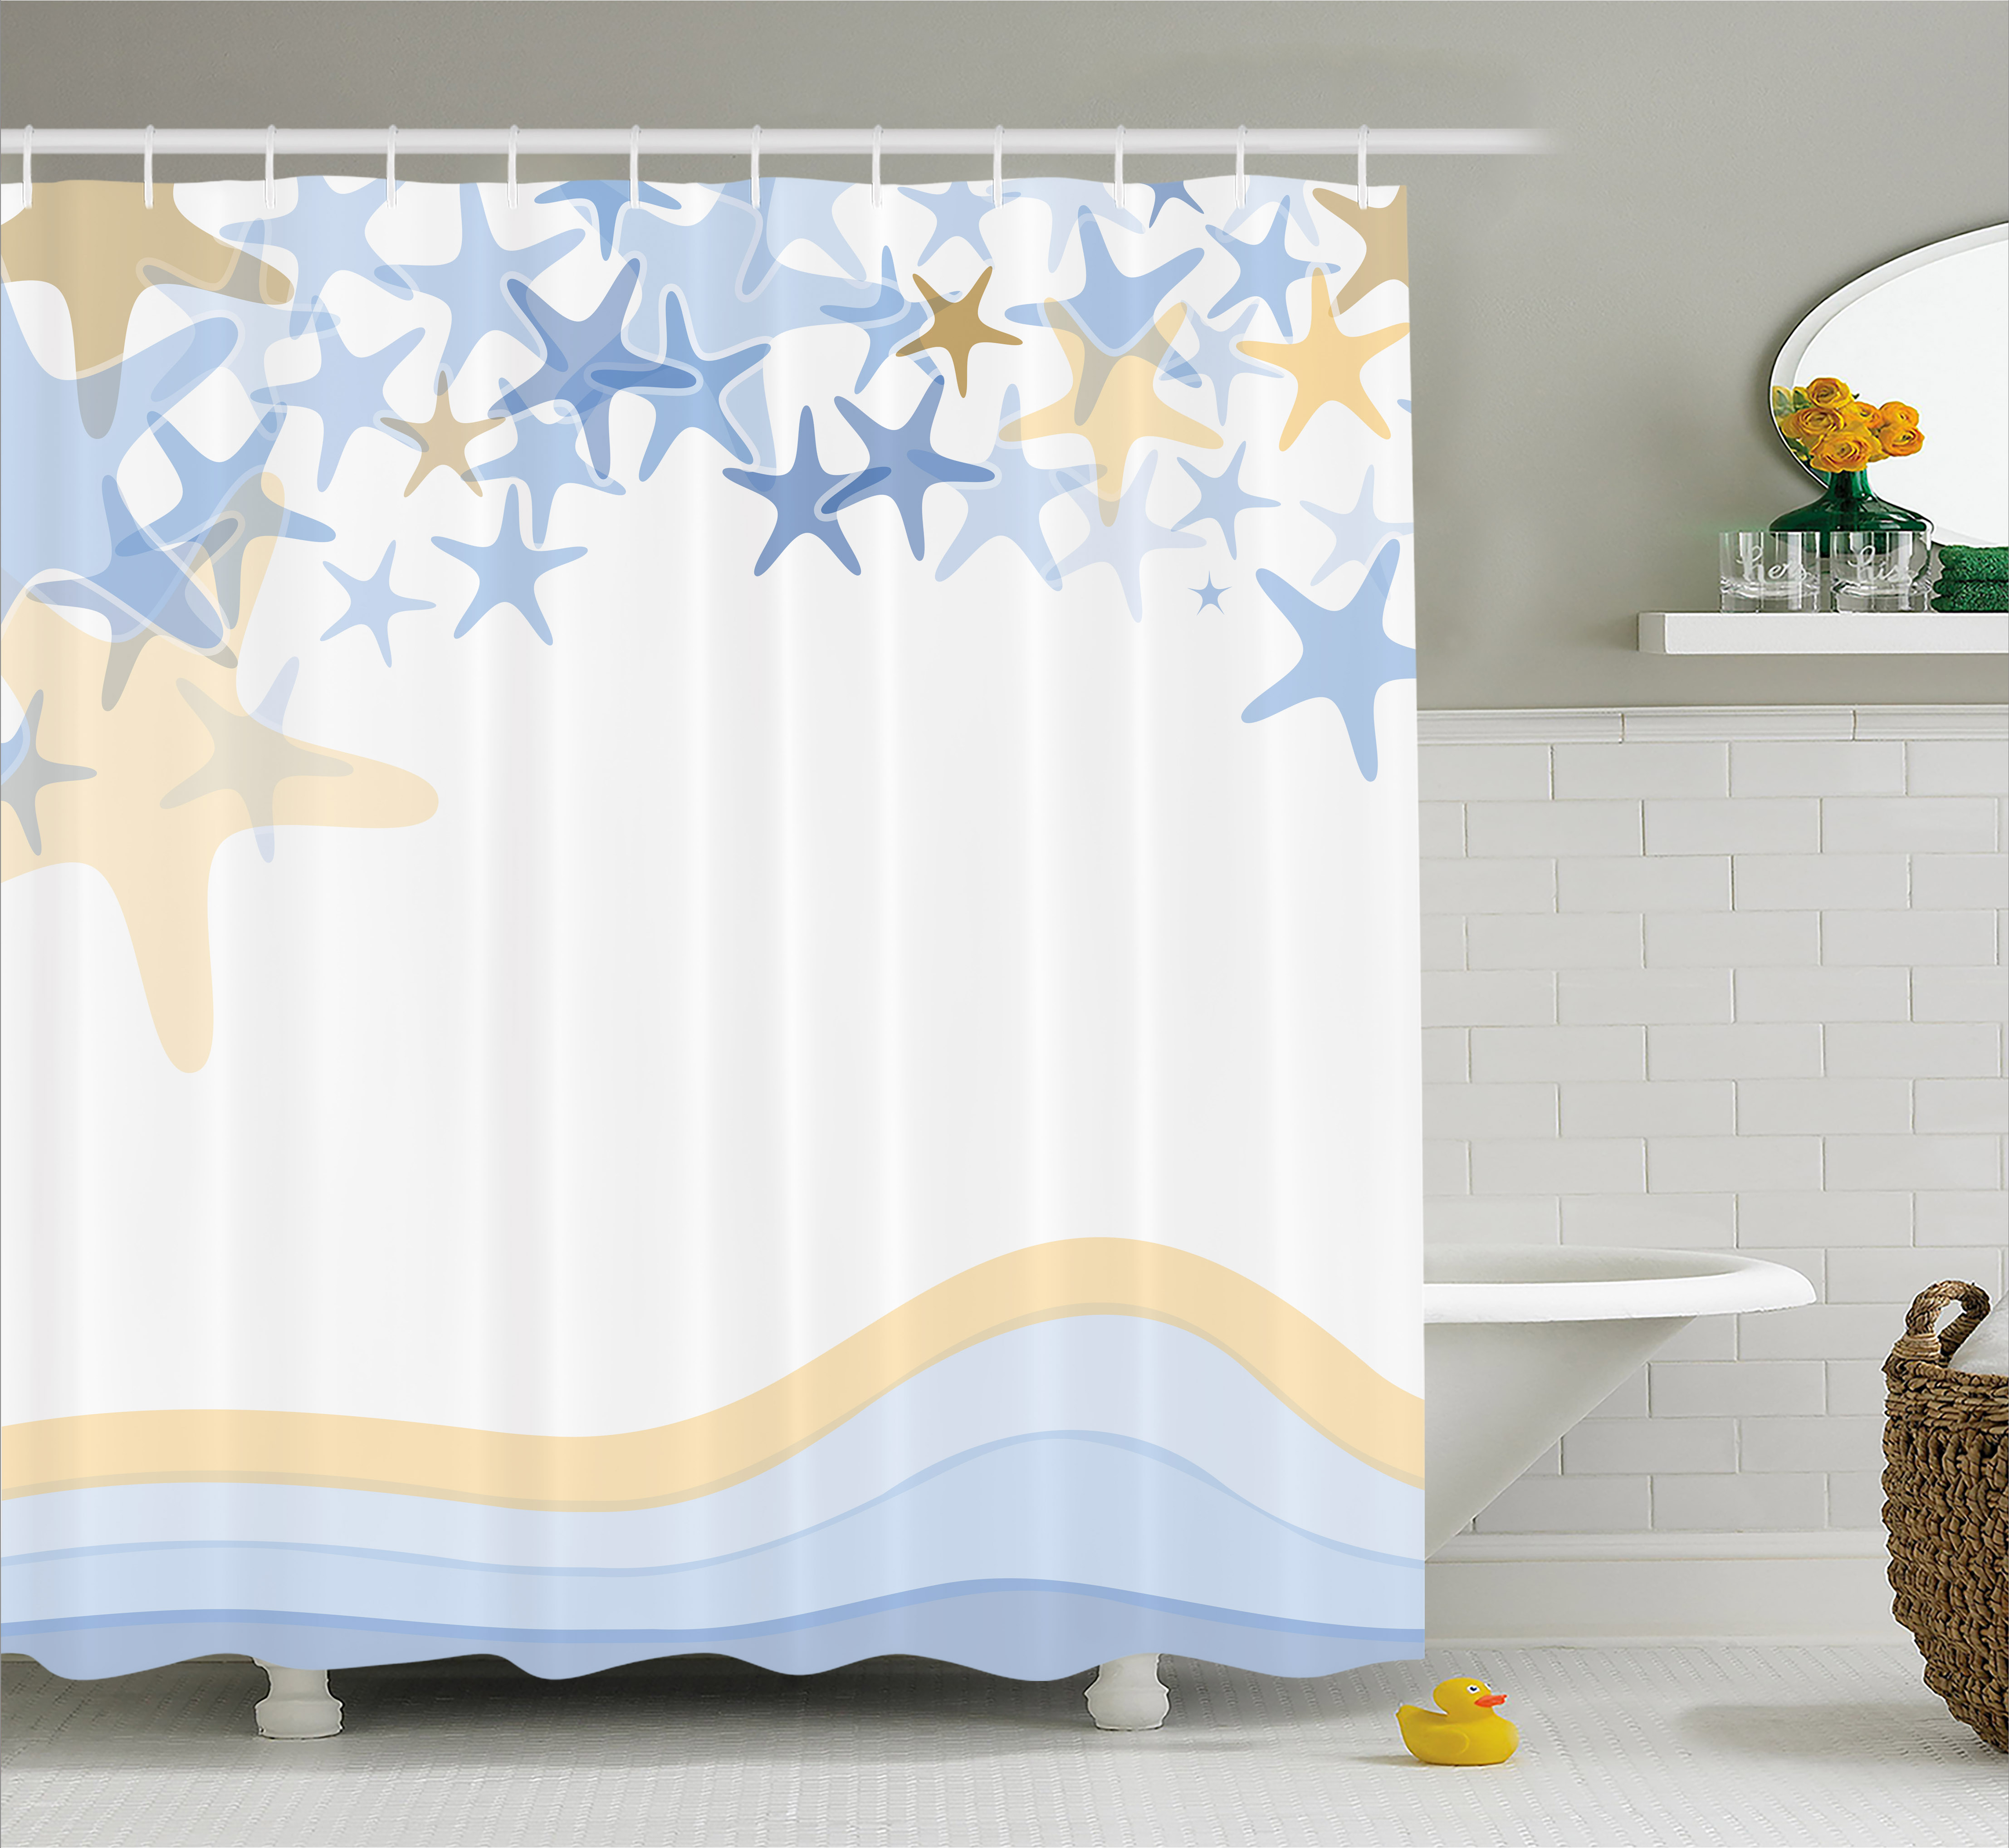 Starfish Decor Shower Curtain, Wavy Stripes Ocean Inspired Design Starfishes Sky Aquatic Sea Life Theme, Fabric Bathroom Set with Hooks, 69W X 84L Inches Extra Long, Multicolor, by Ambesonne